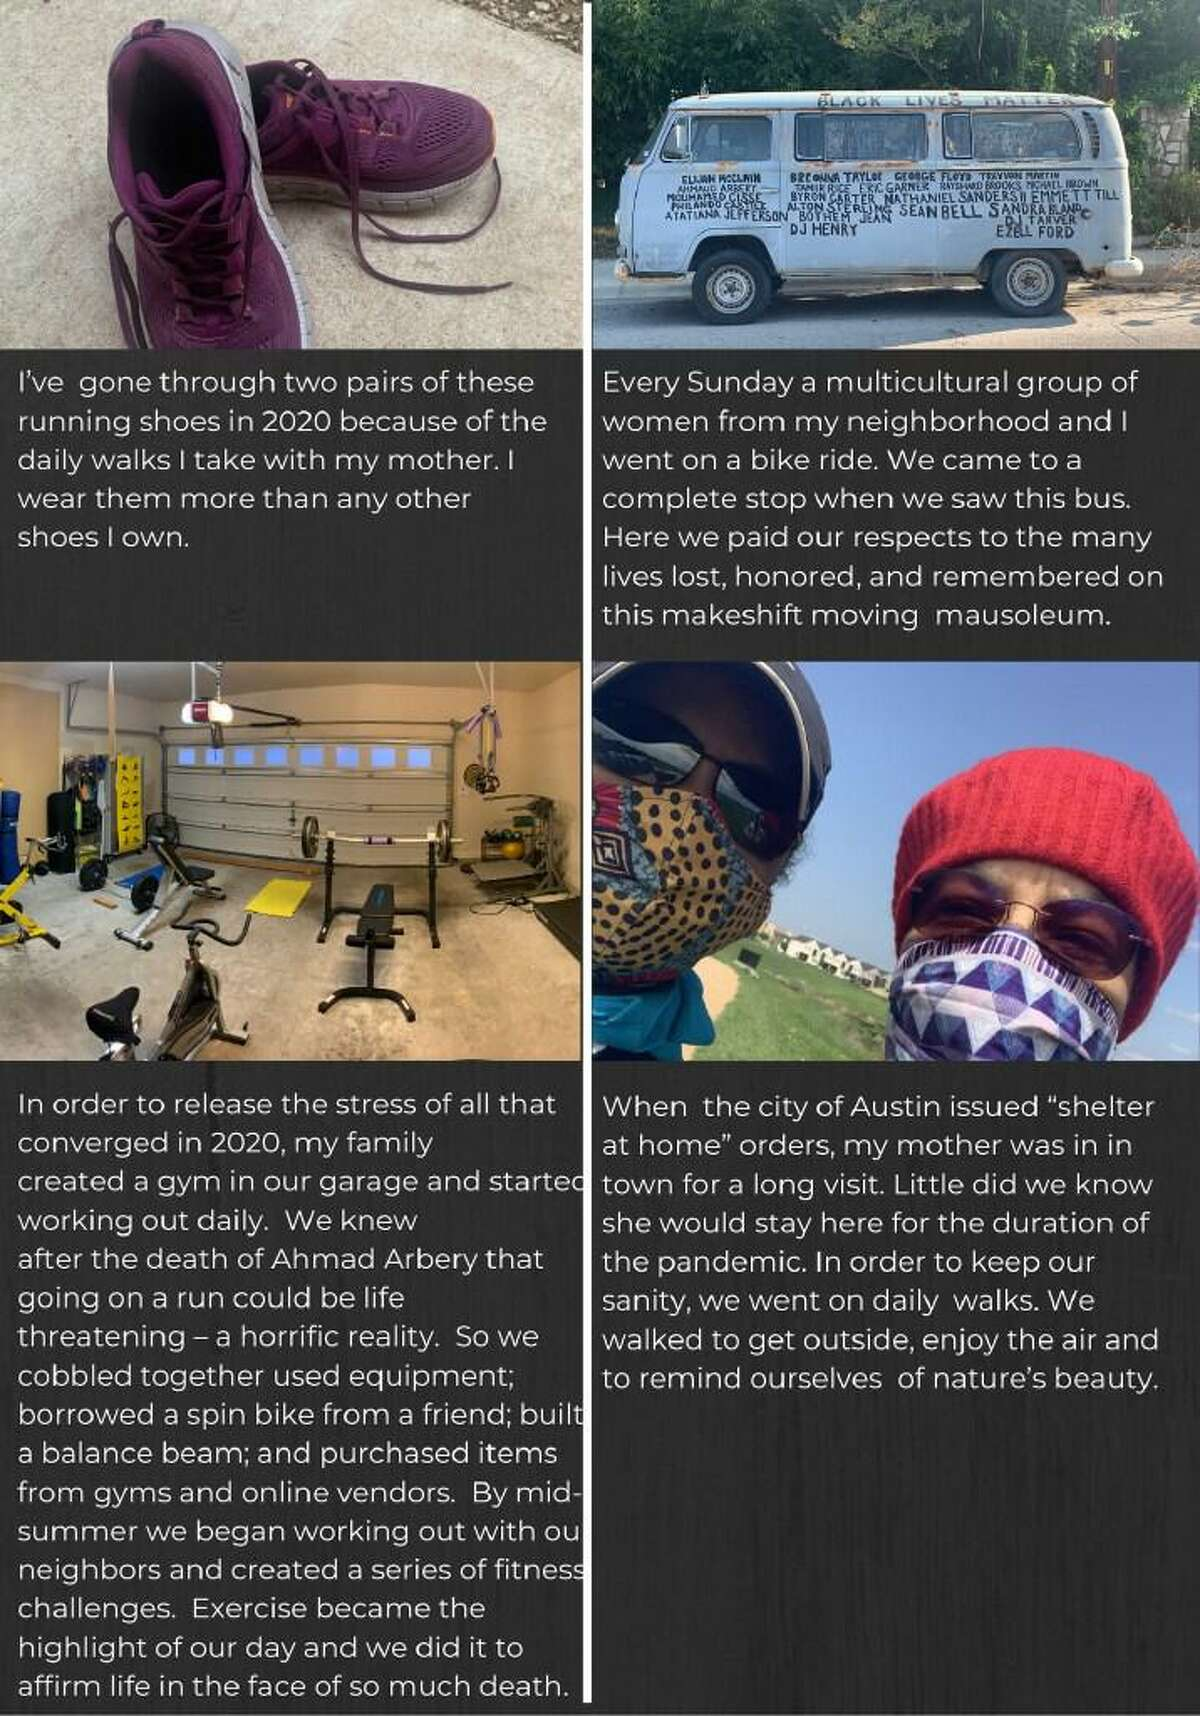 UT-Austin historian Daina Ramey Berry submitted photos of herself masked with her mother, her worn-out walking shoes, a Black Lives Matter bus, and a gym that she and her family set up in her garage for the